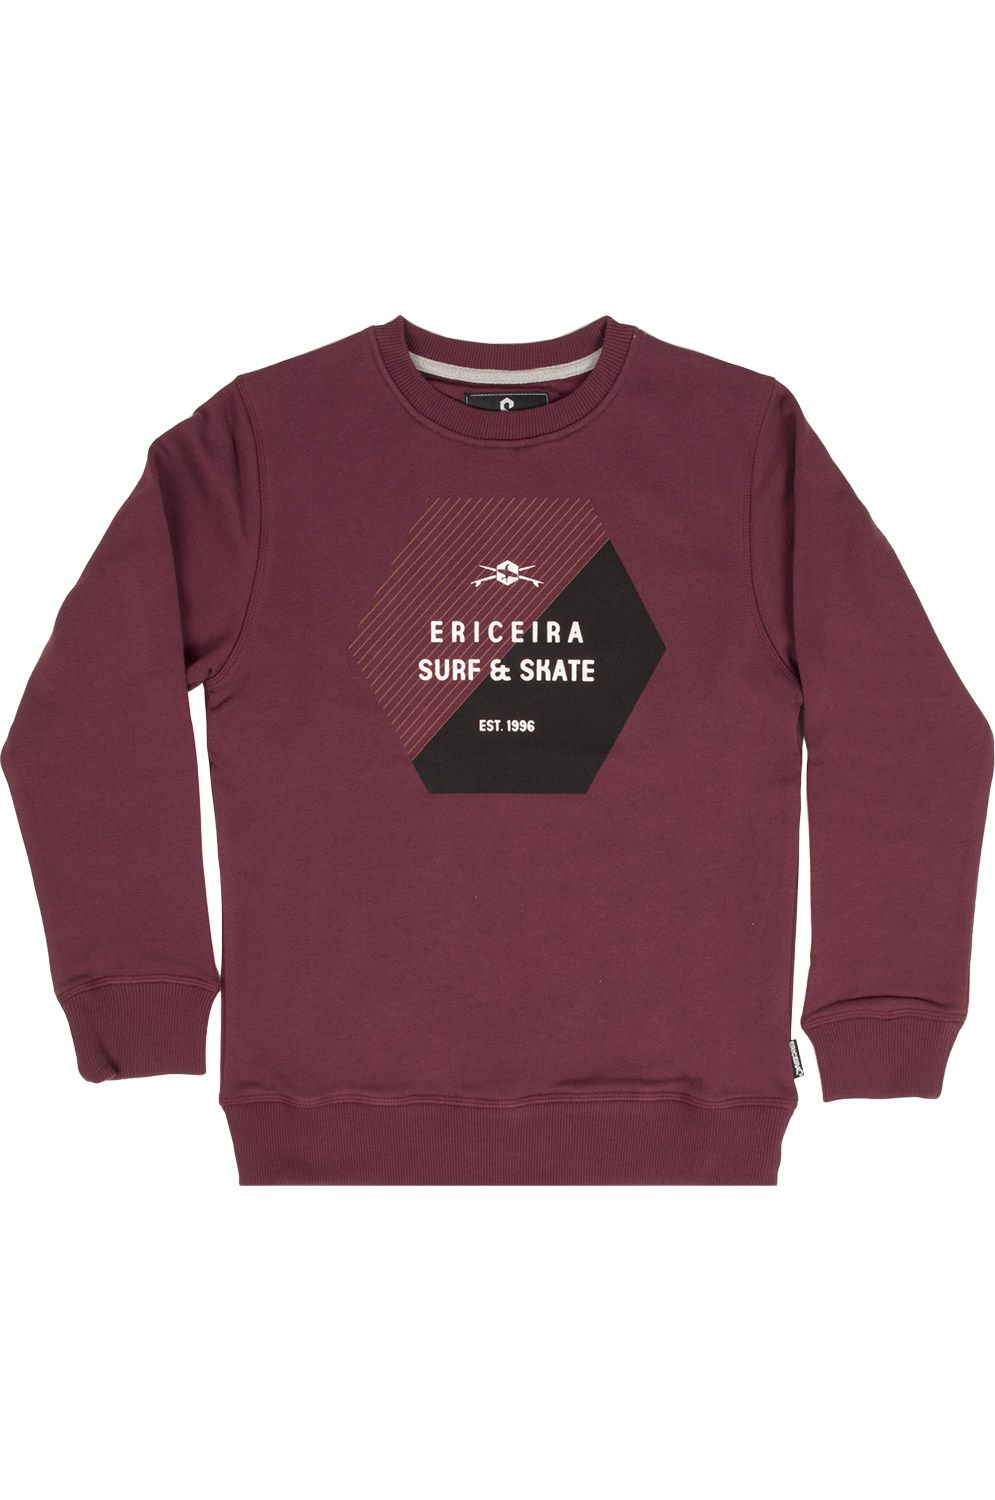 Ericeira Surf Skate Crew Sweat ONE BY ONE Prune